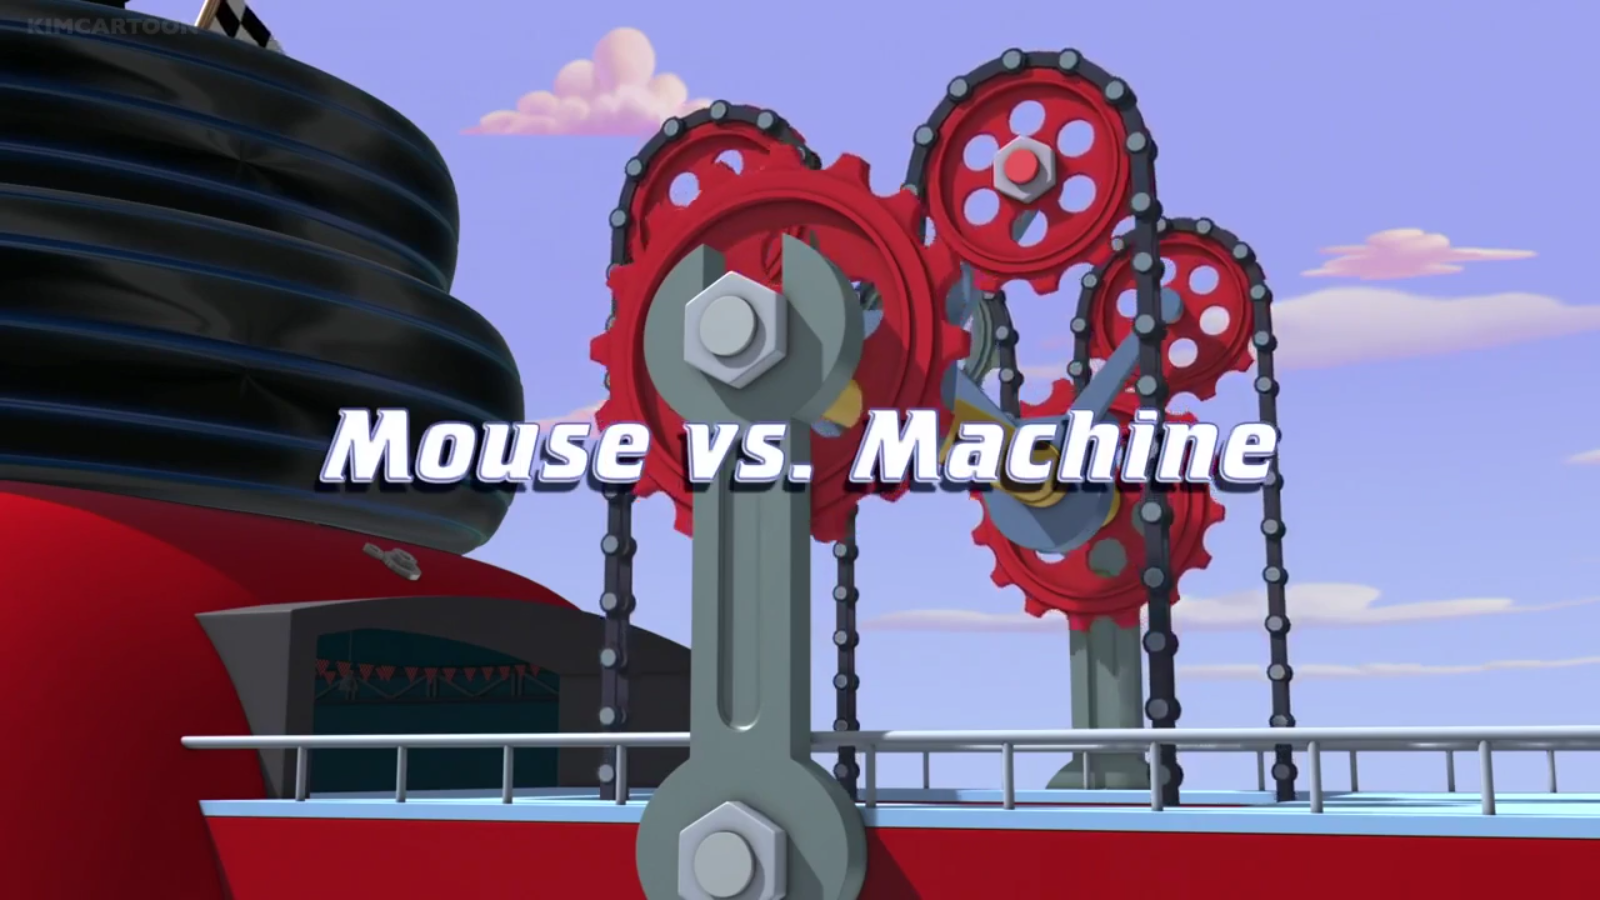 Mouse Vs. Machine!